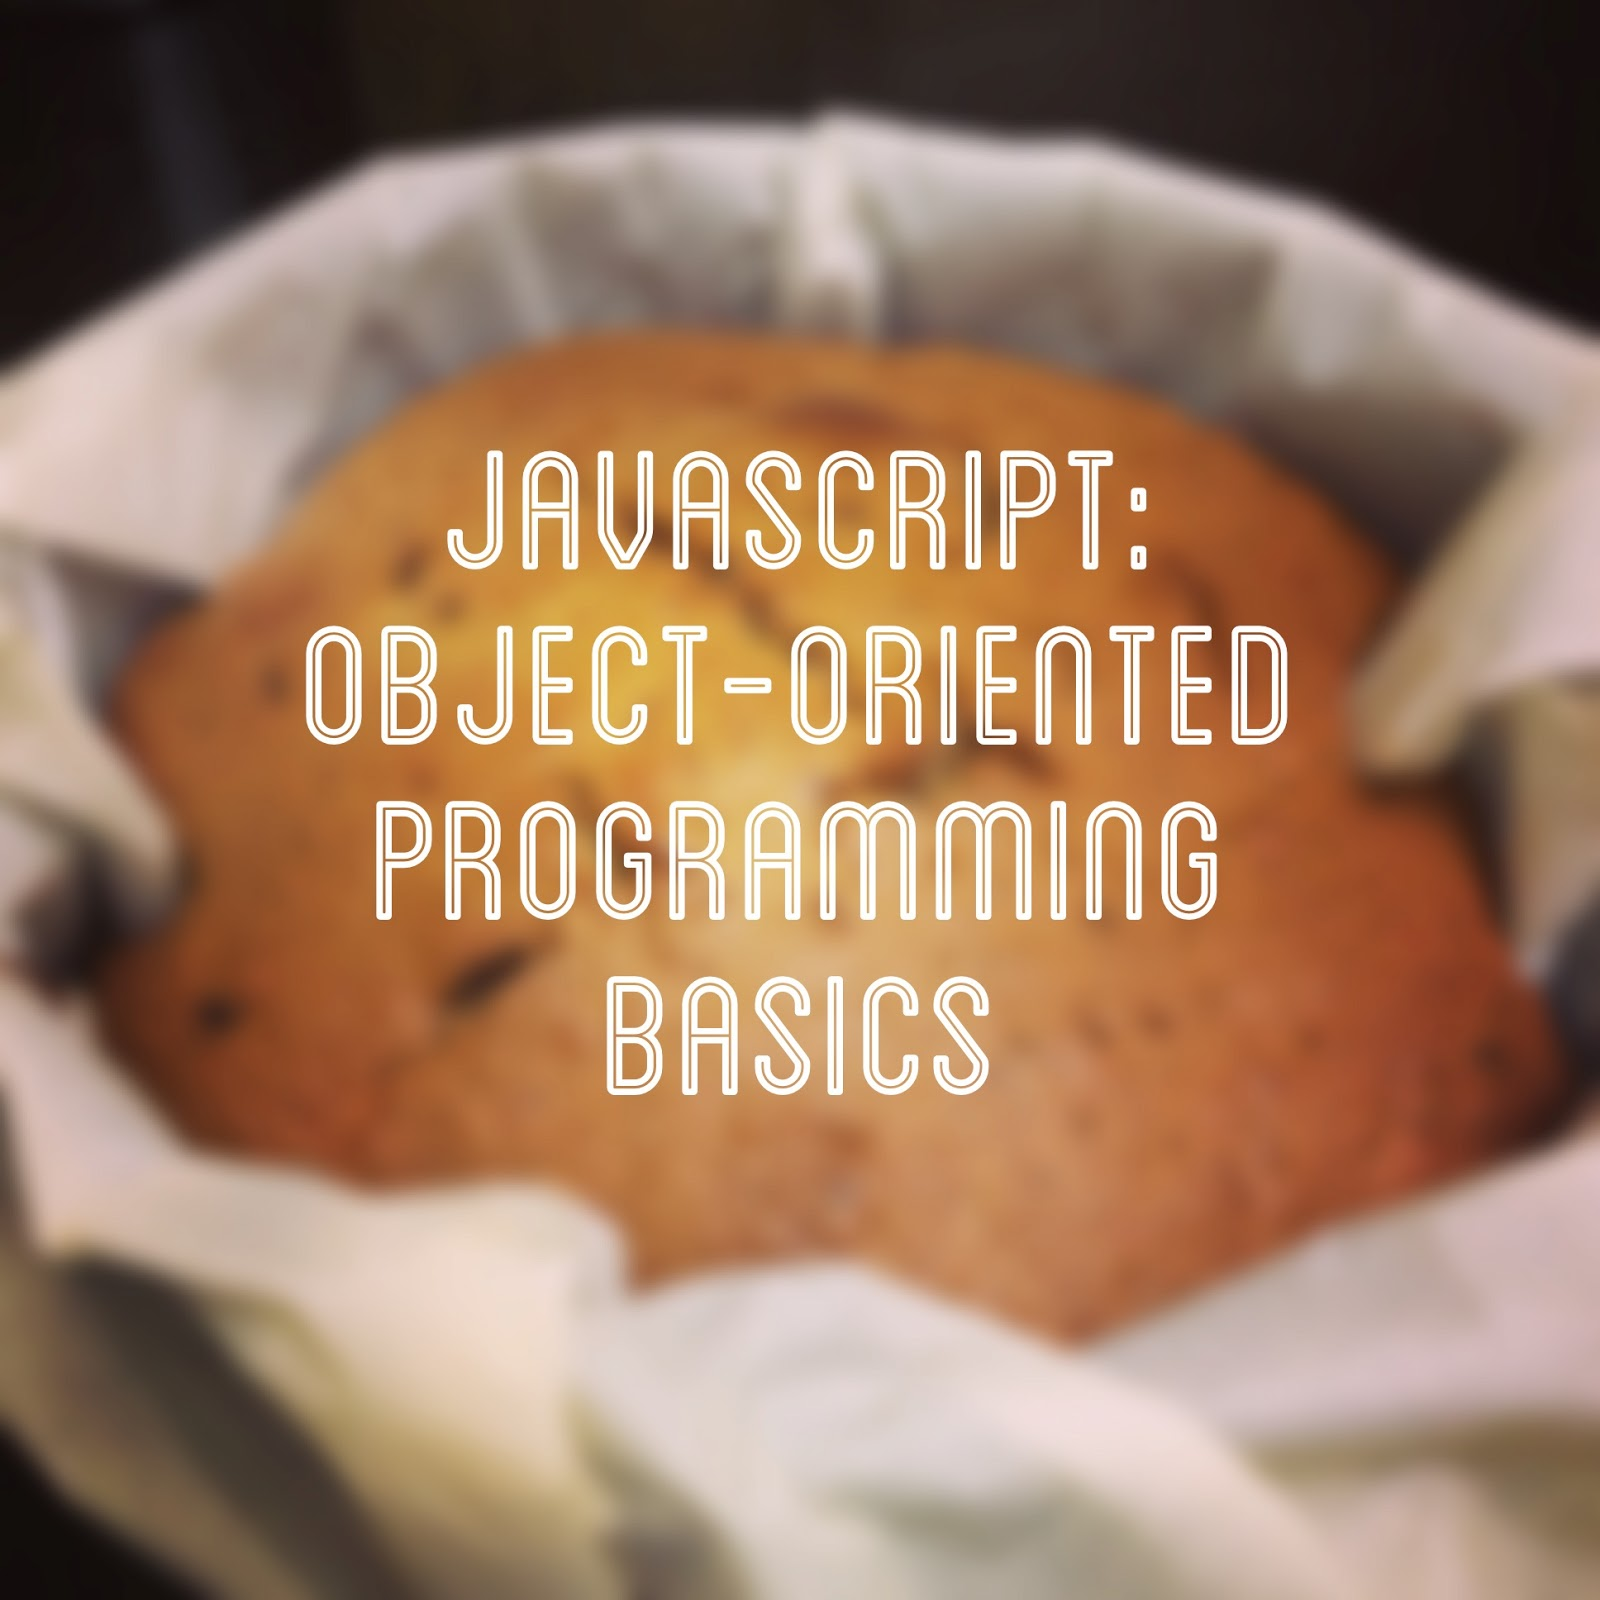 An introduction to Object-Oriented Programming in JavaScript